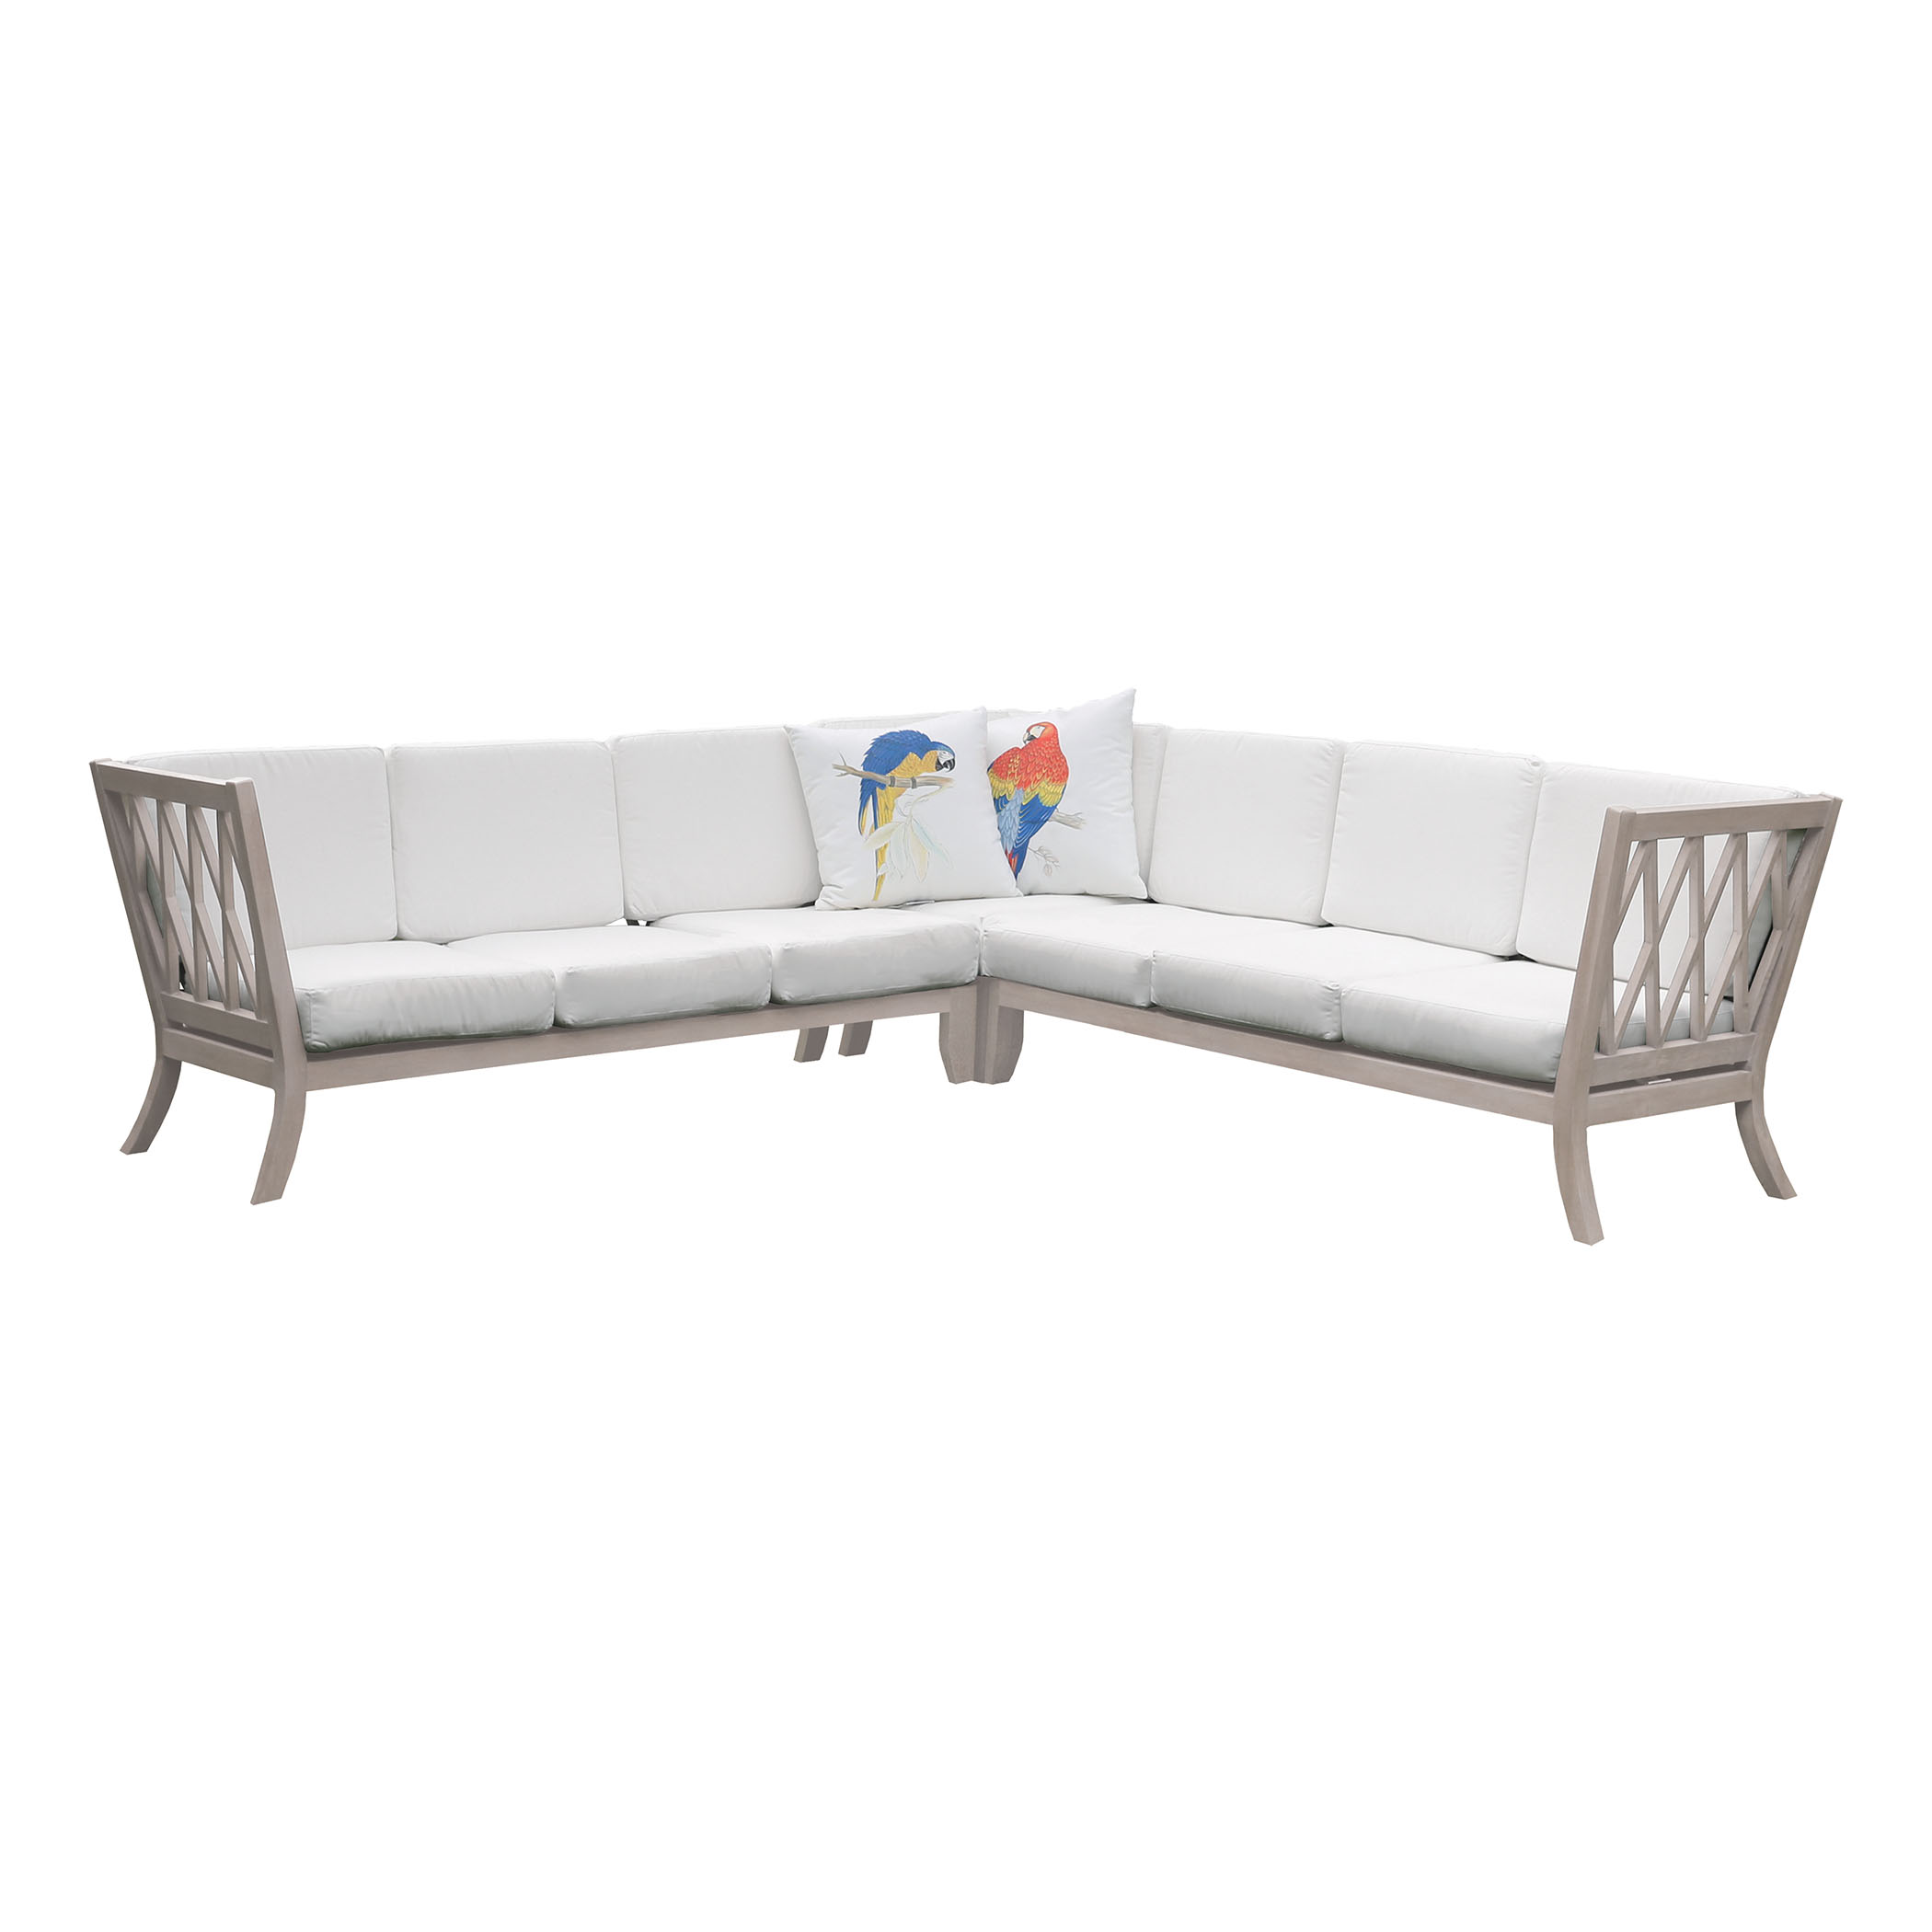 Hilton Outdoor Sectional | Elk Home